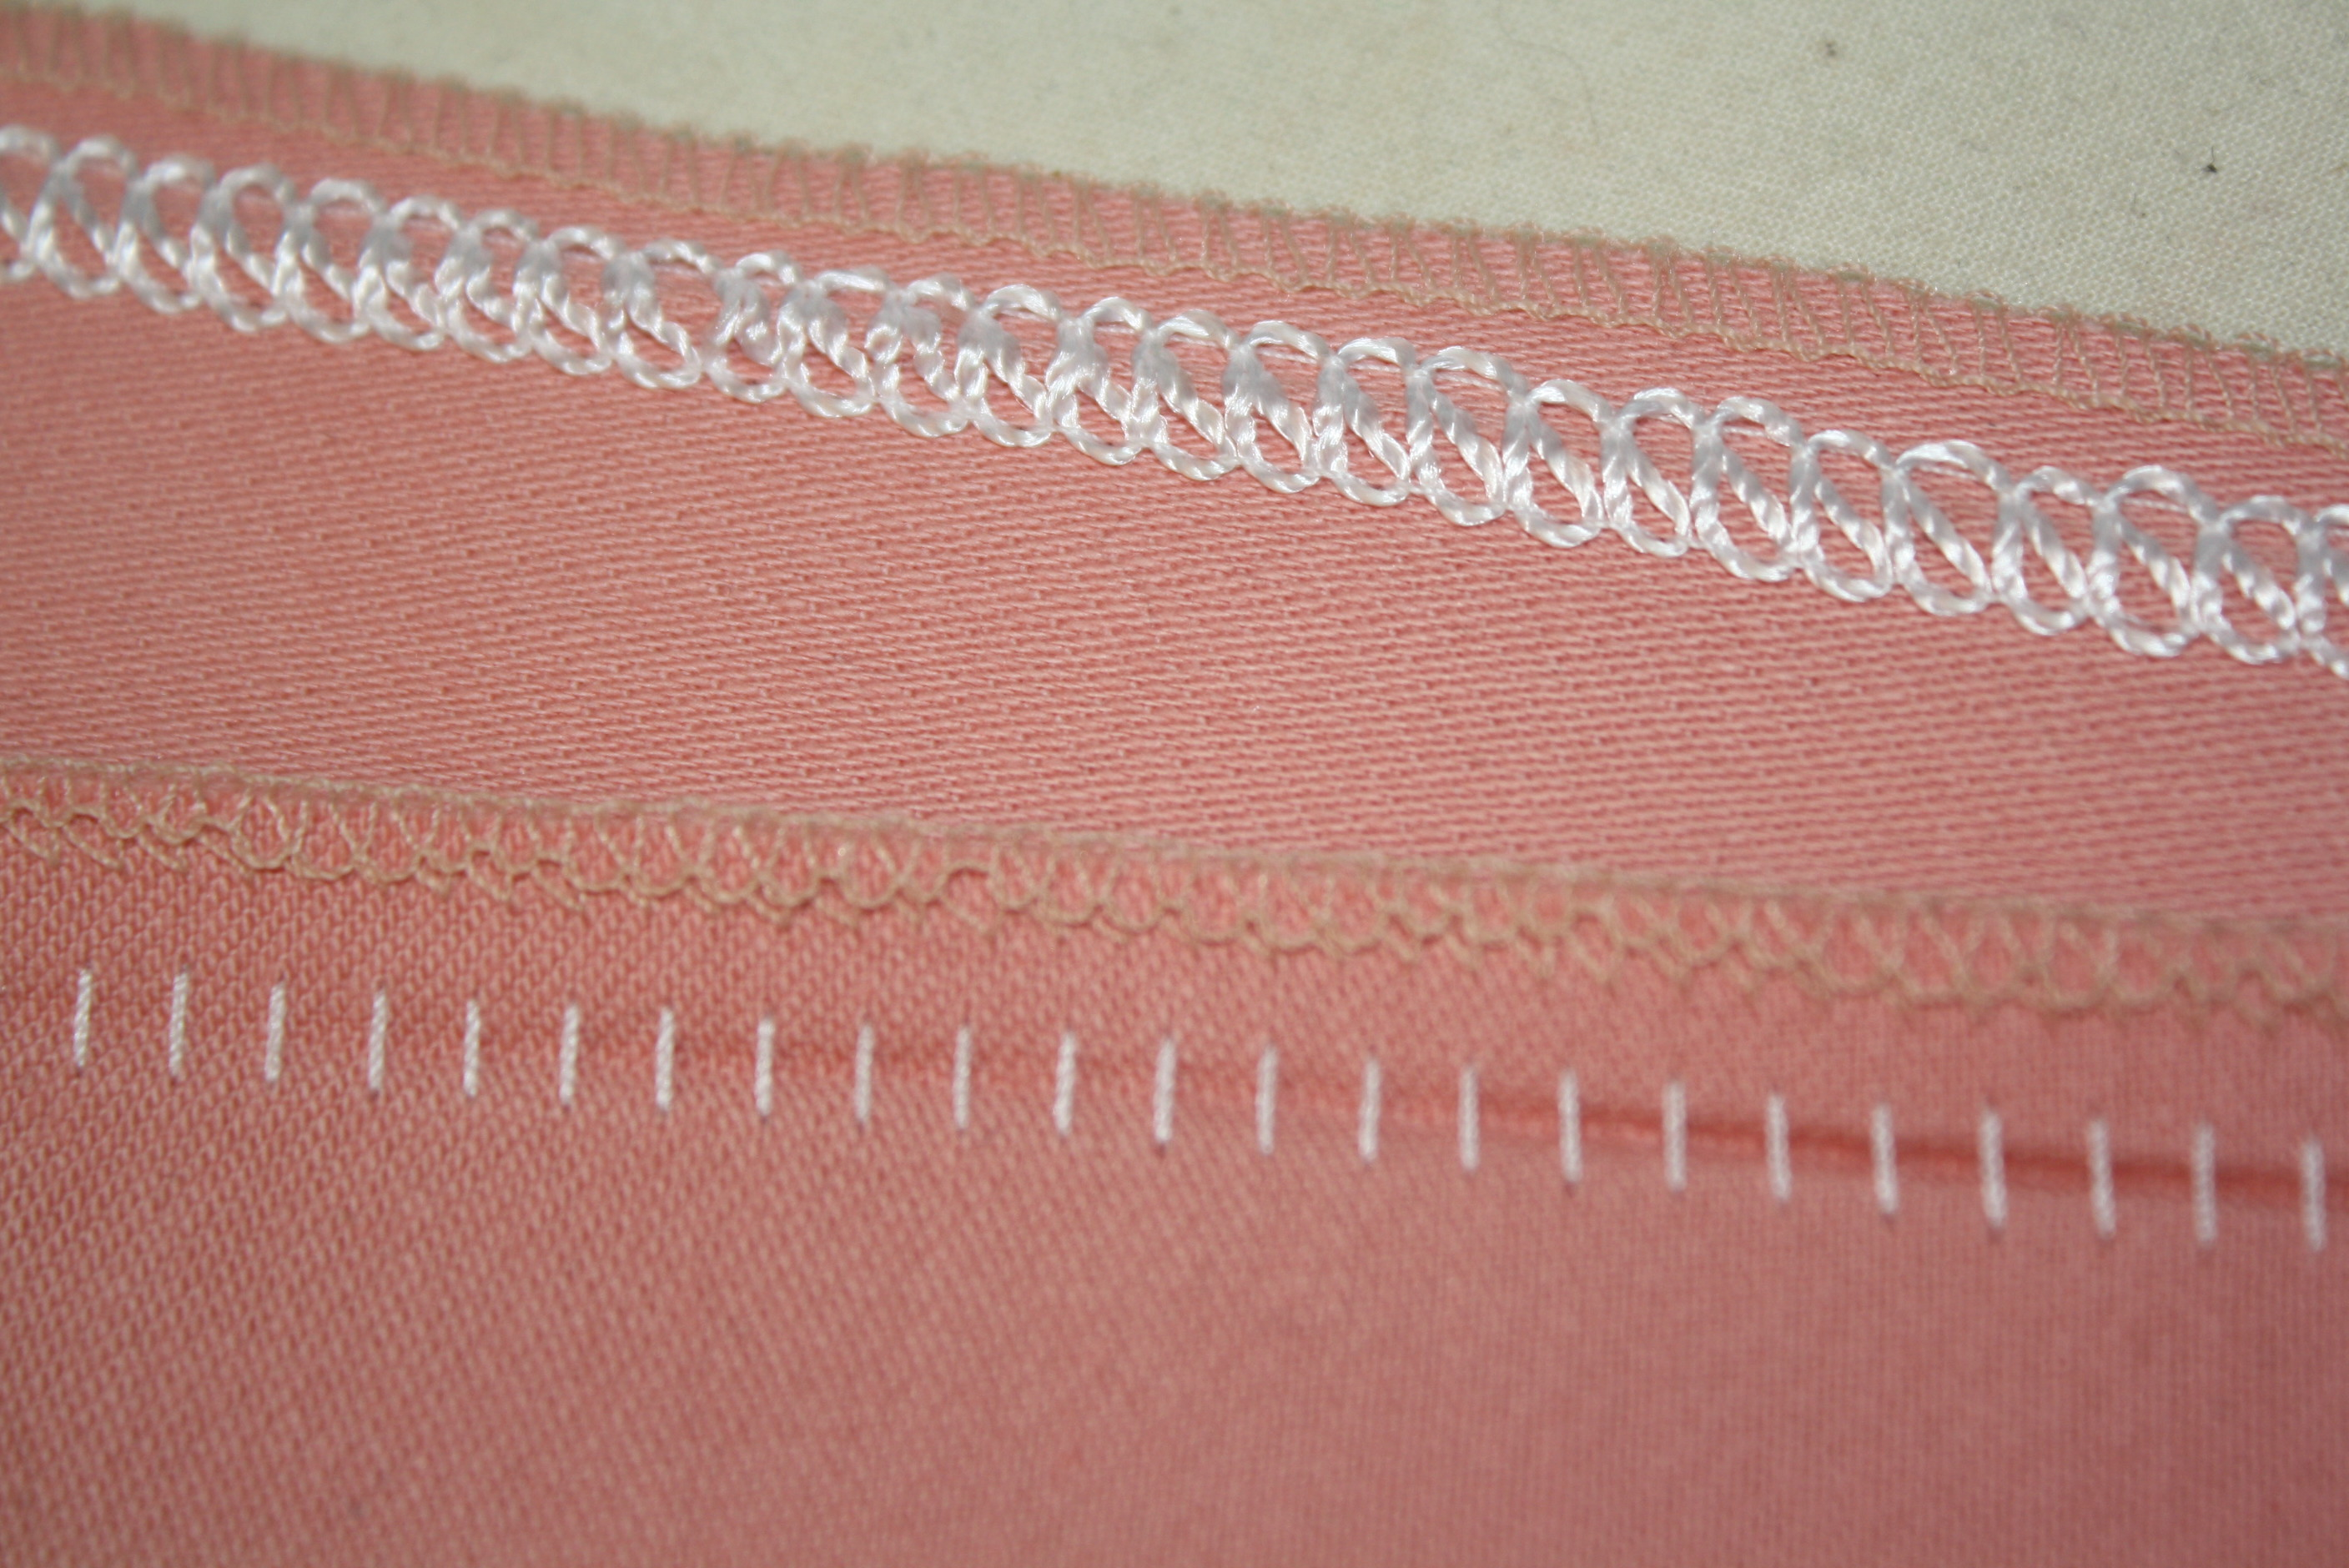 How to sew with creative serging - Angela Wolf